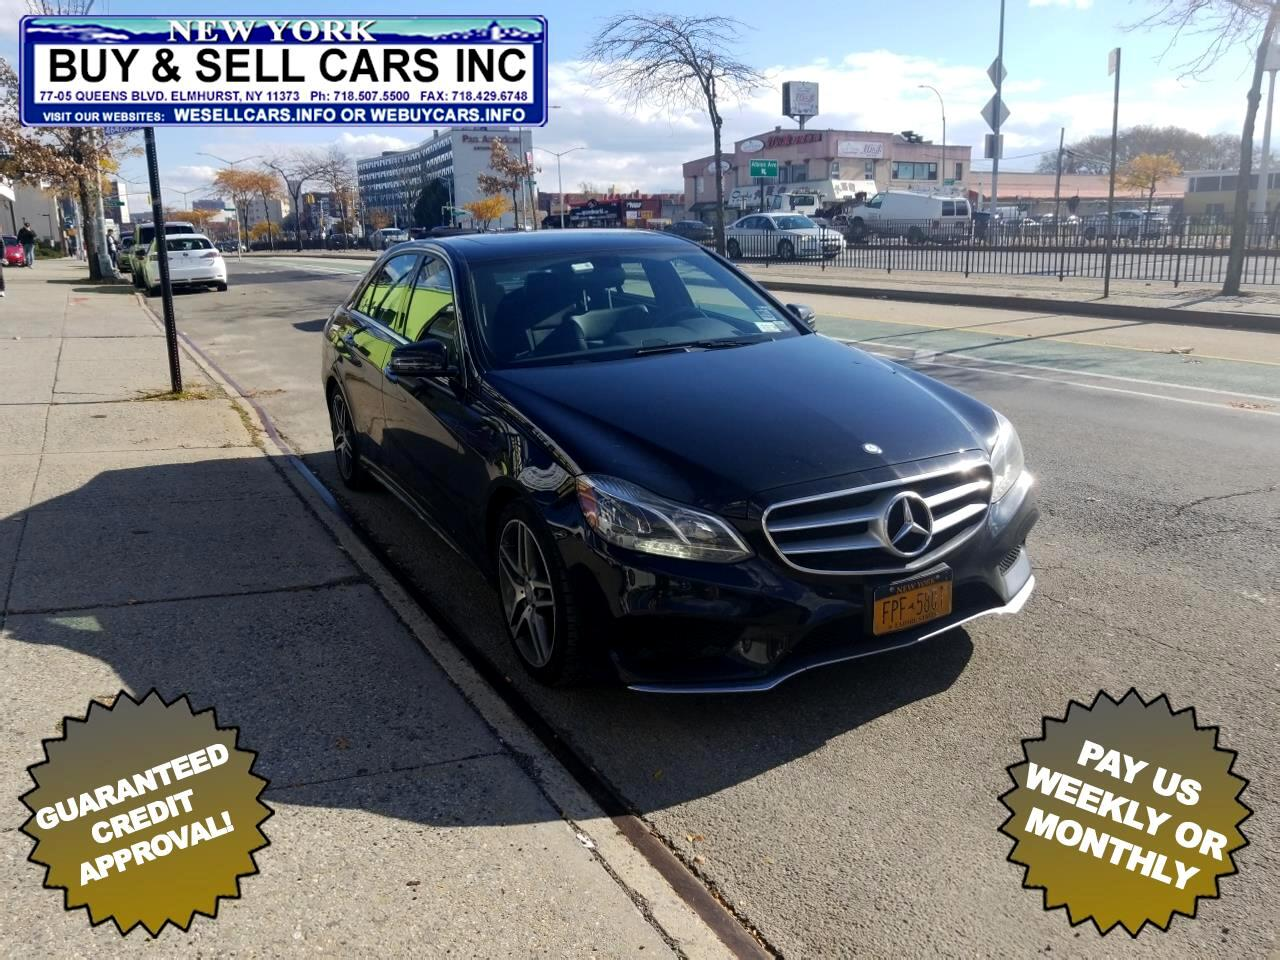 Used Cars Ny >> Used Cars For Sale Elmhurst Ny 11373 Buy Sell Cars Inc